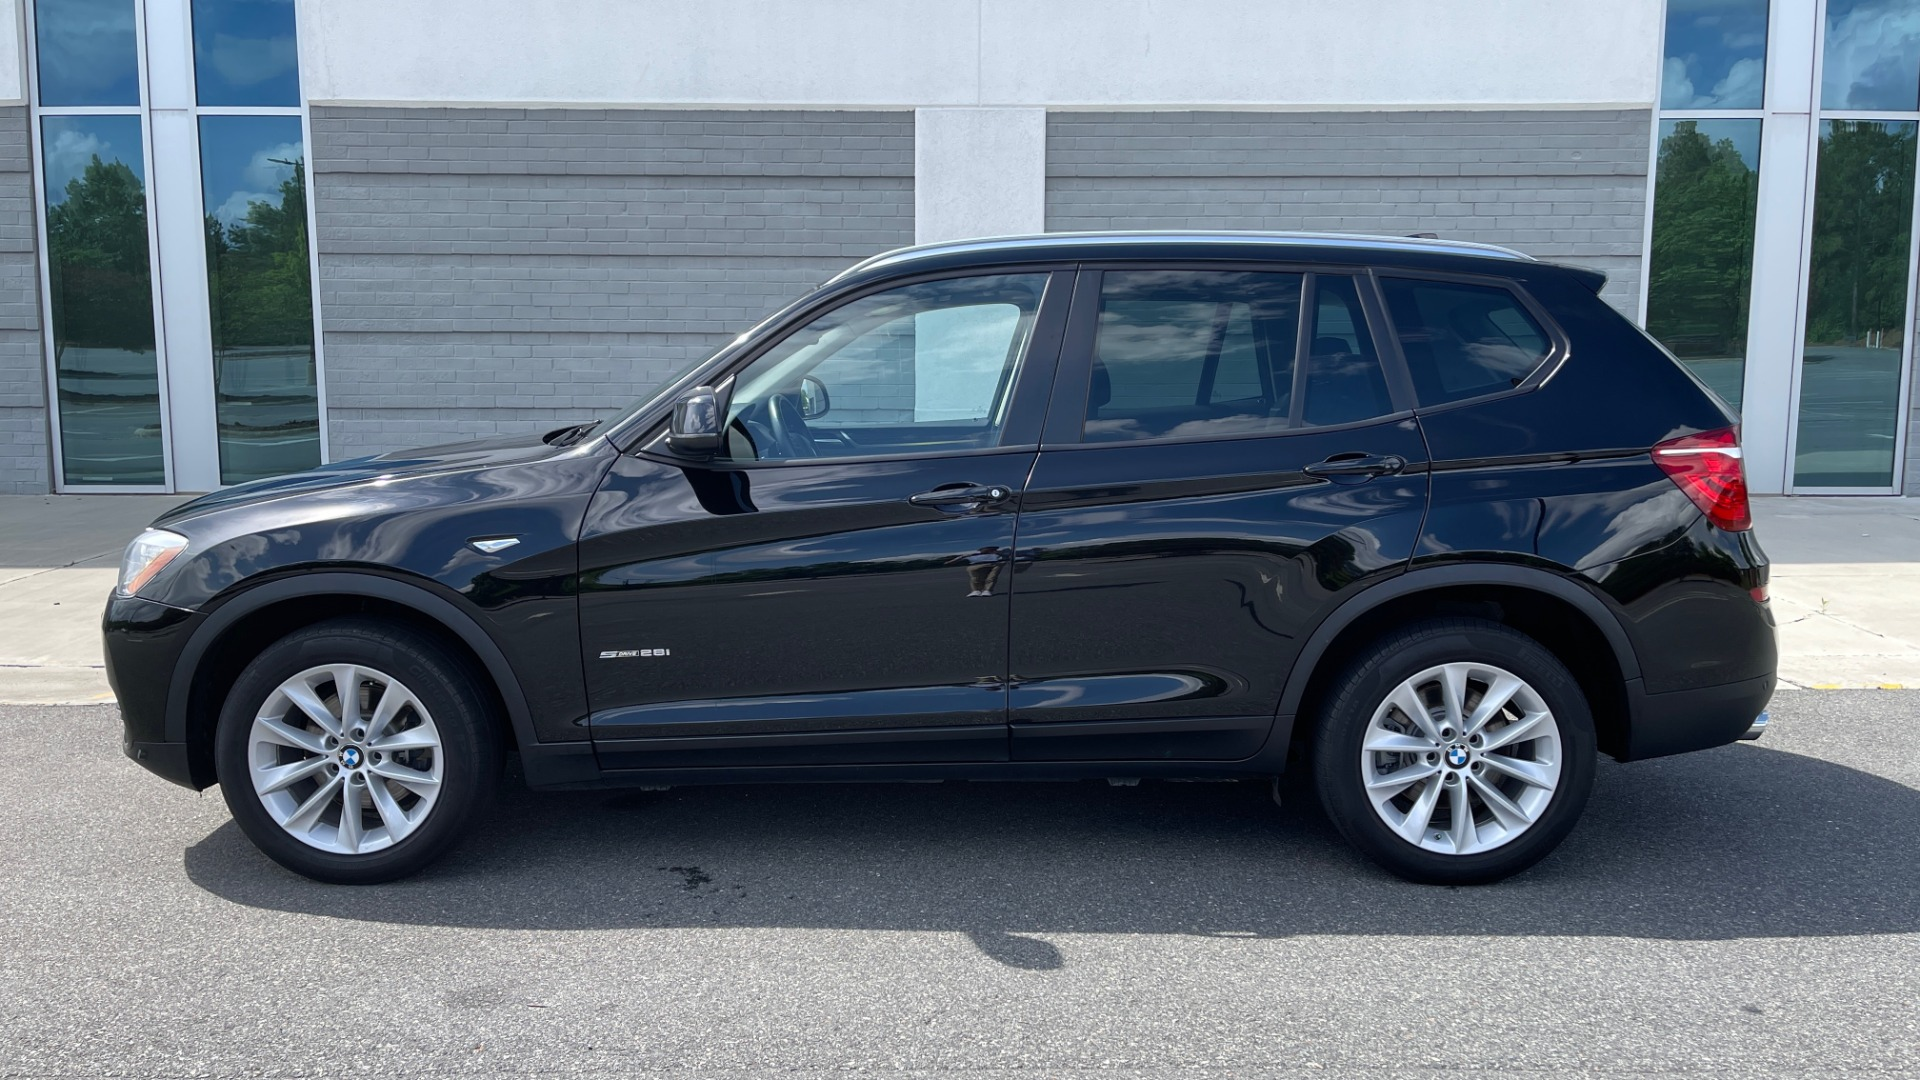 Used 2017 BMW X3 SDRIVE28I / DRVR ASST PKG / HTD STS / REARVIEW / 18IN WHEELS for sale $24,995 at Formula Imports in Charlotte NC 28227 6